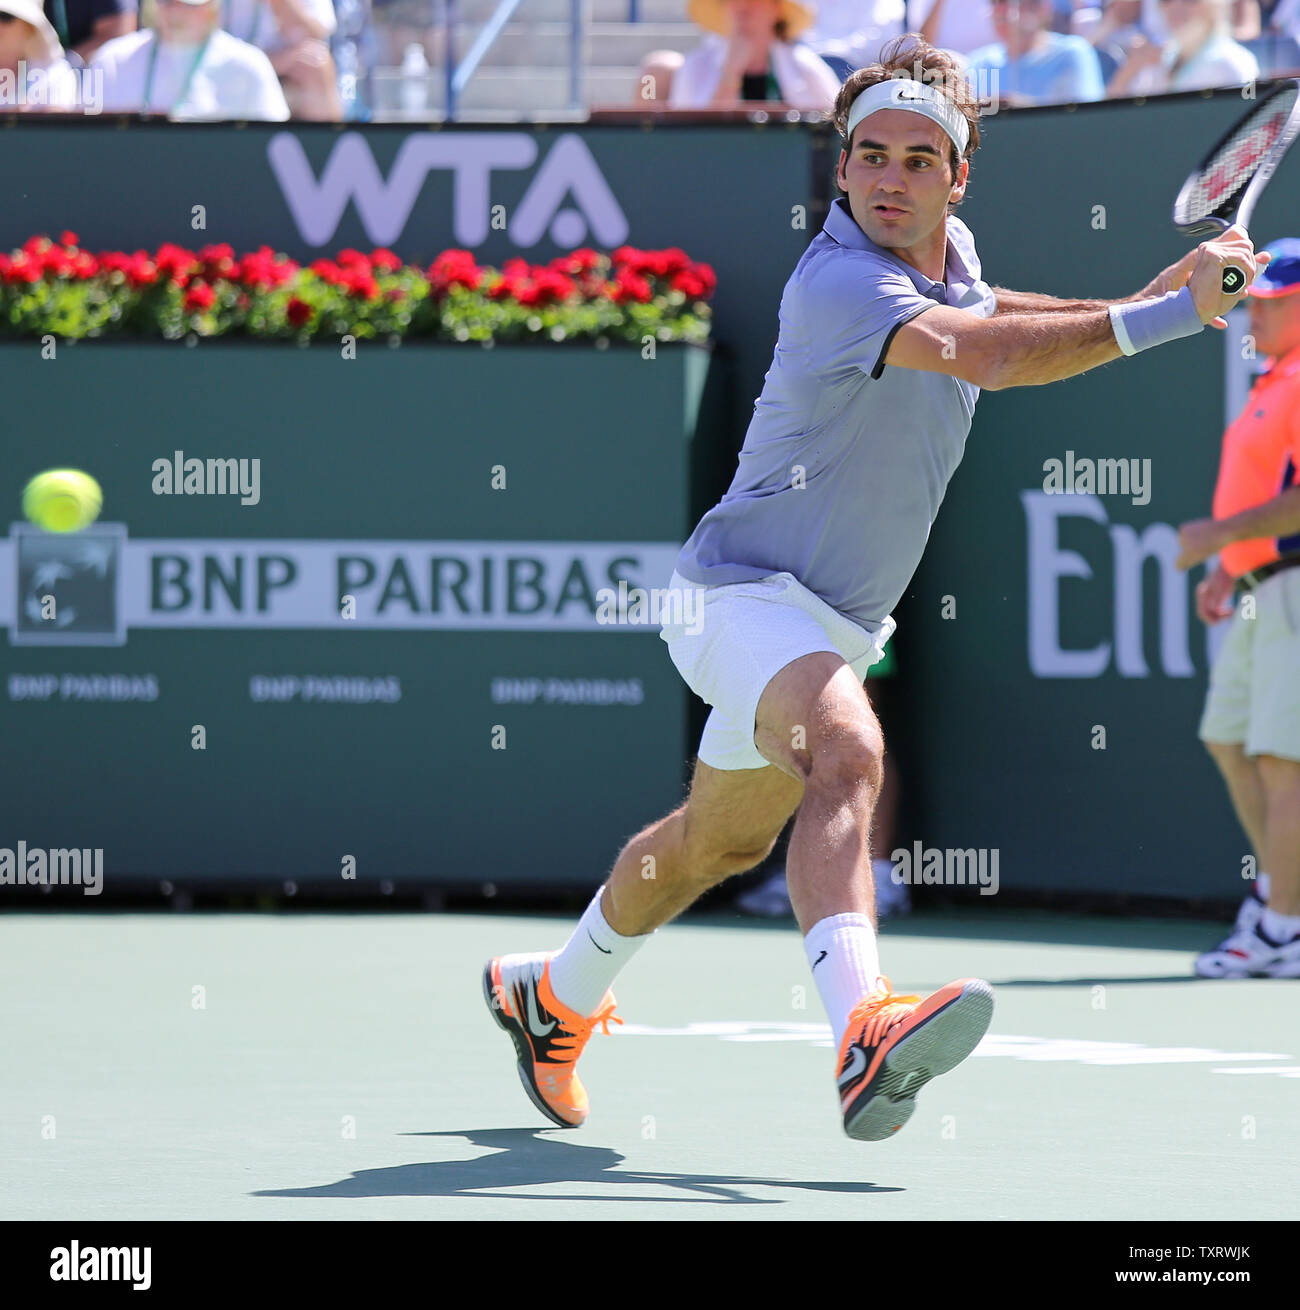 piloto promoción Son  Roger Federer of Switzerland prepares to hit a shot during his men's  semifinal match against Alexandr Dolgopolov at the BNP Paribas Open in Indian  Wells, California on March 15, 2014. Federer defeated